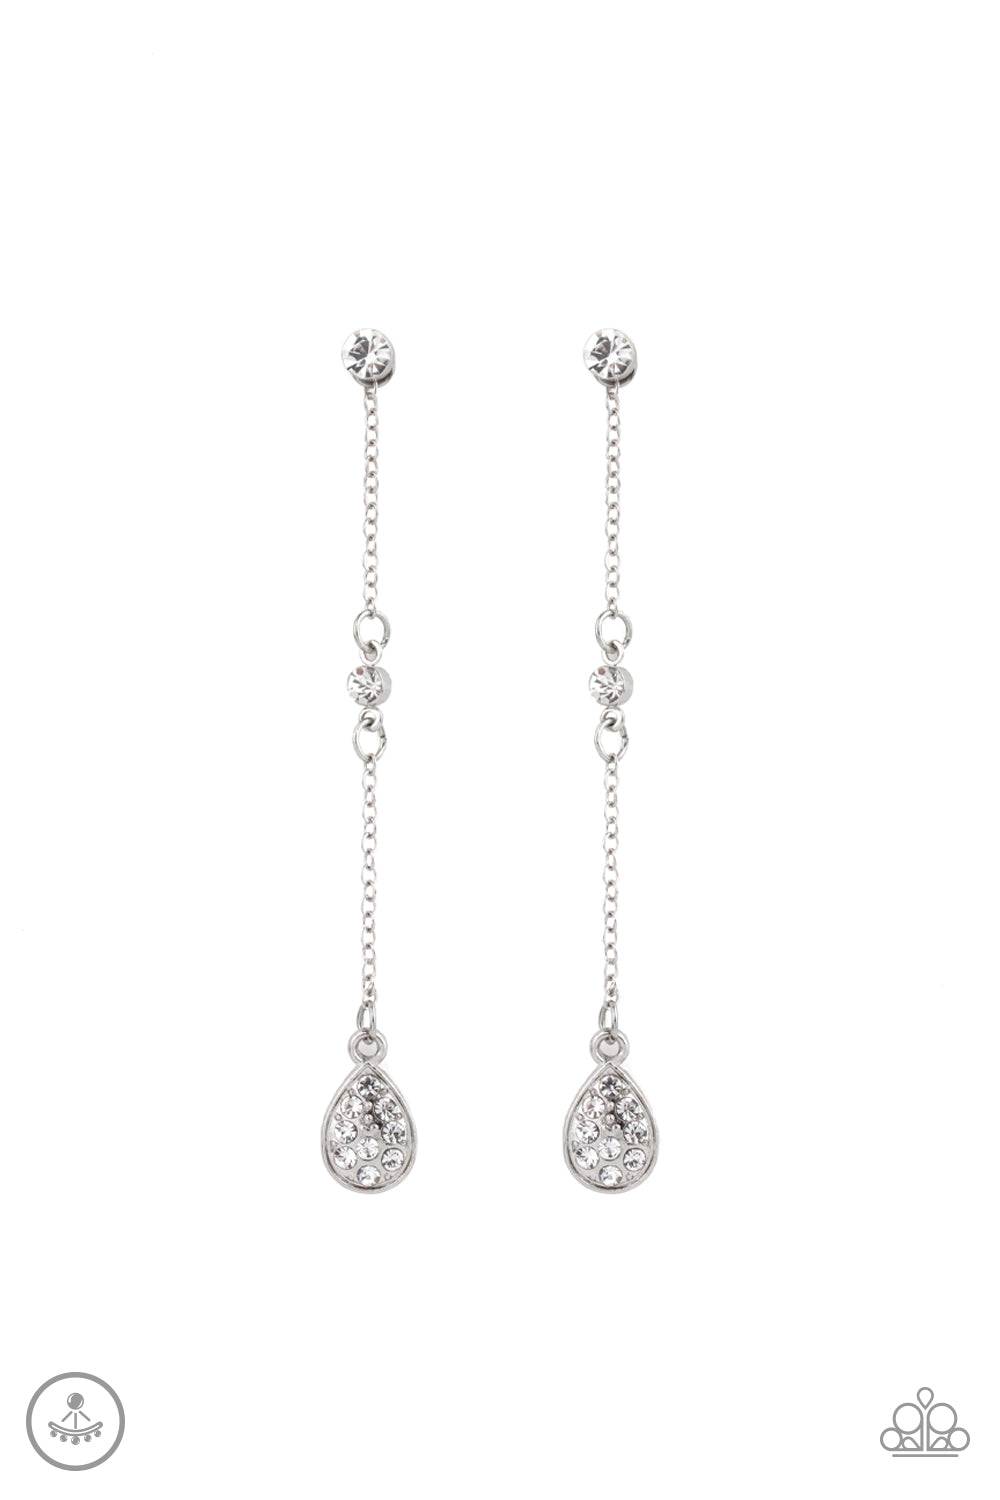 Paparazzi Earring ~ When It REIGNS - White